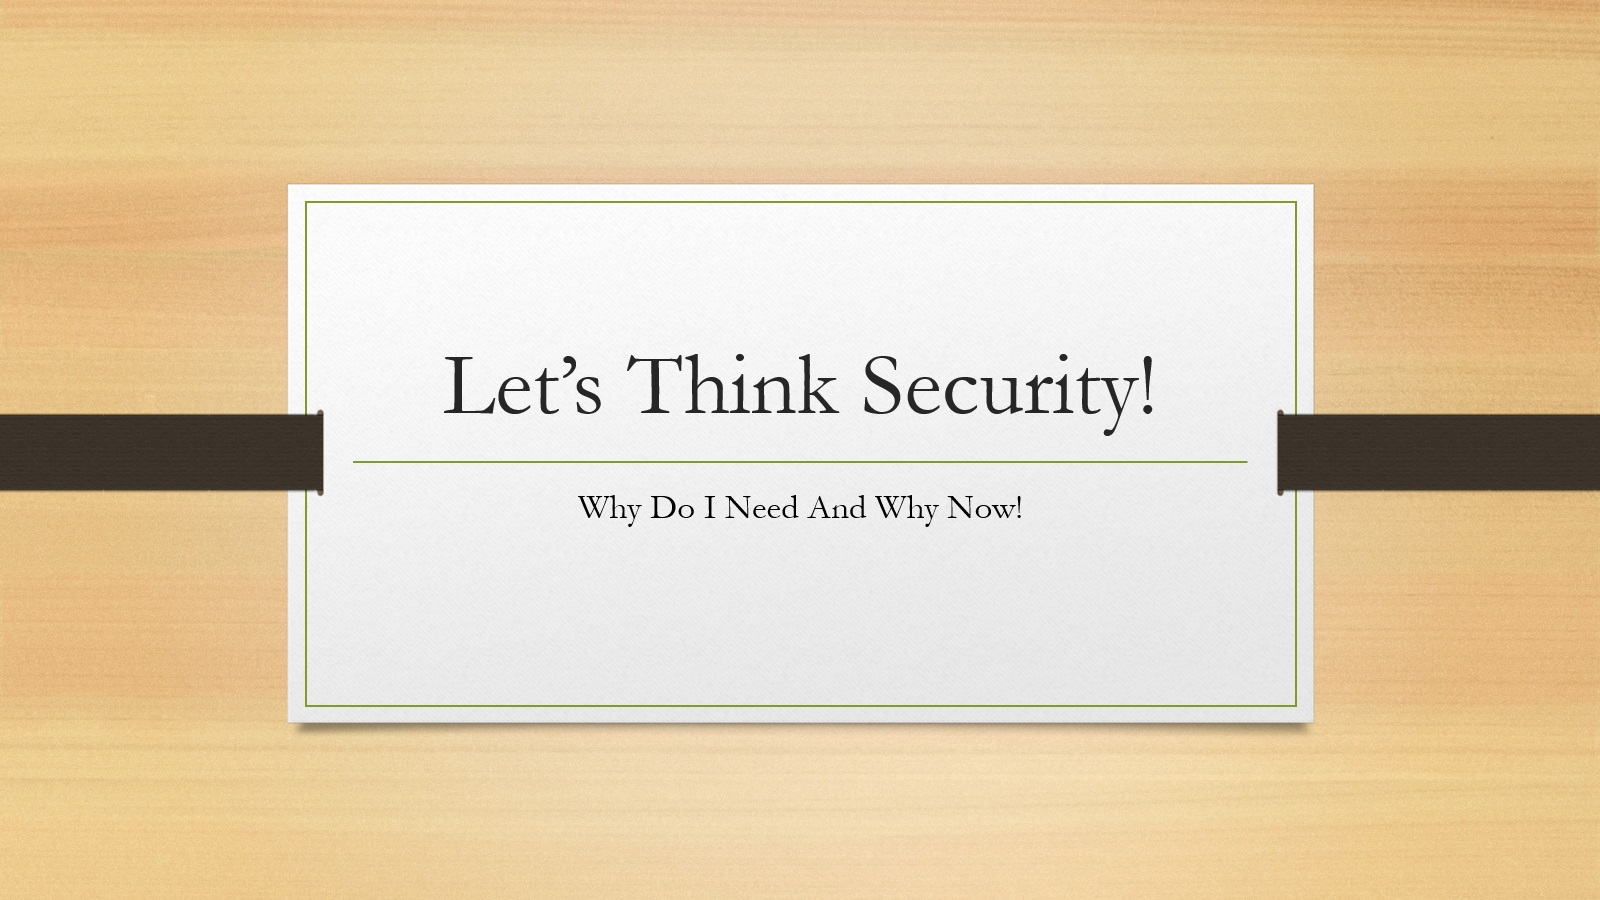 Let's think security! Why do I need and why now!